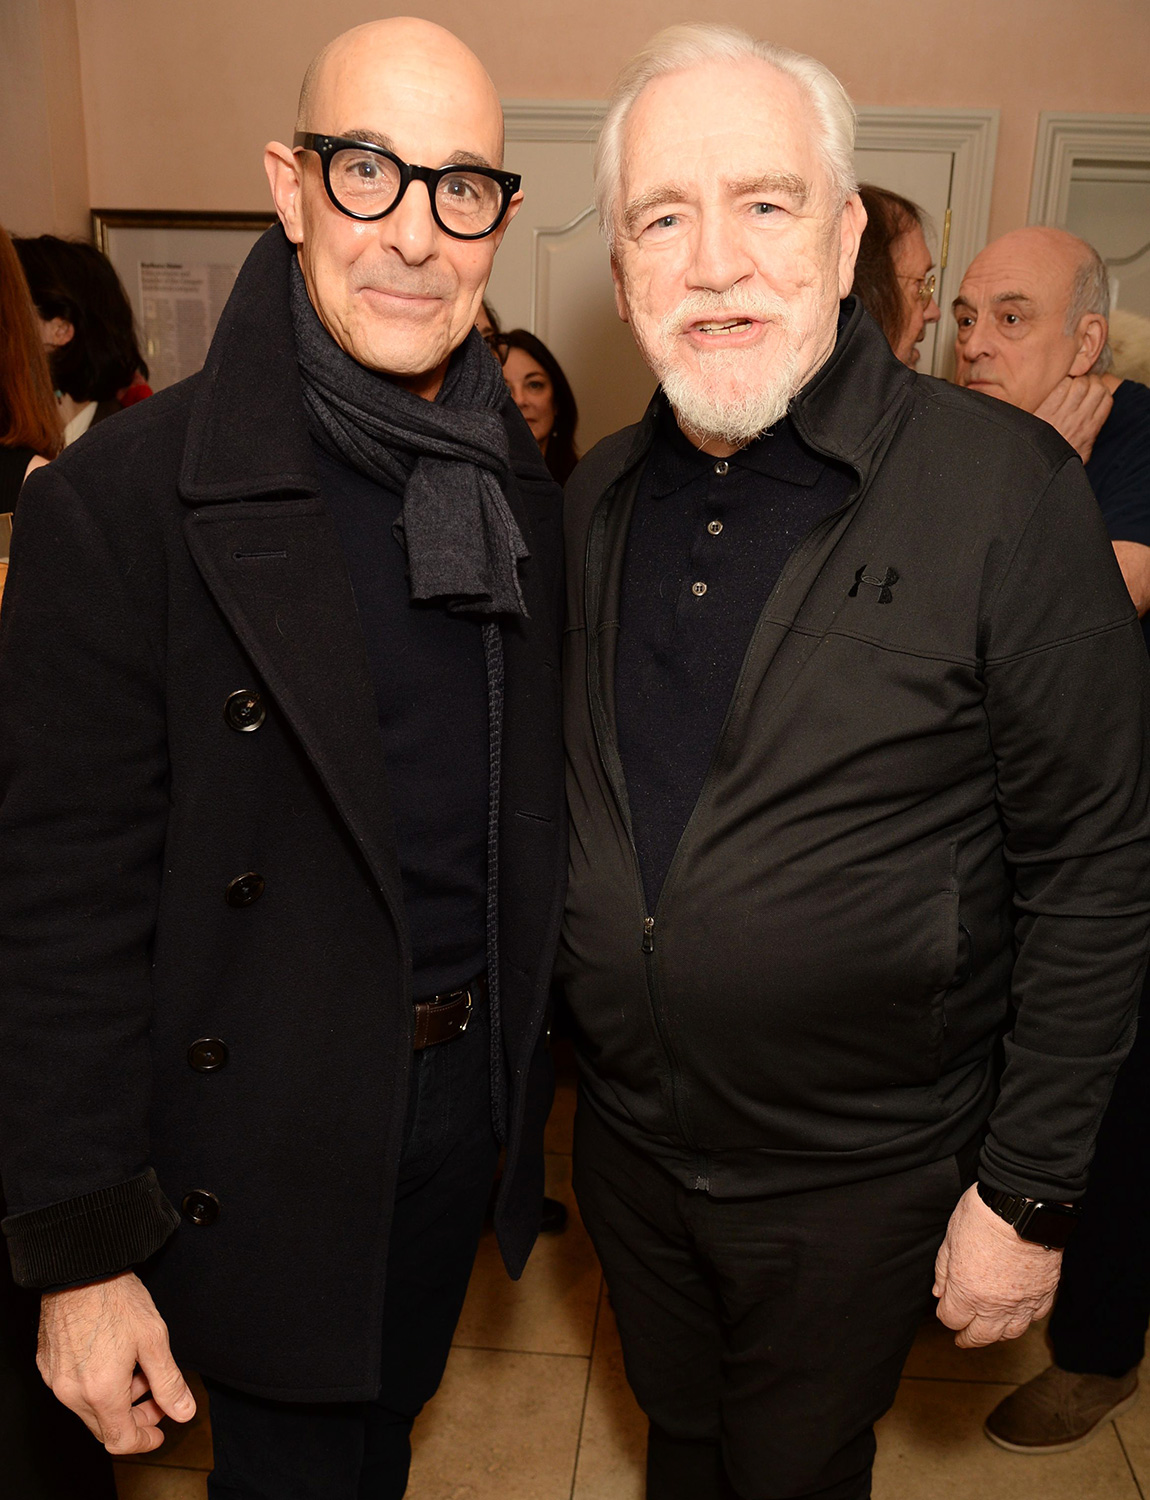 Stanley Tucci and Brian Cox 'Sinners' play, The Playground Theatre, London, UK - 26 Feb 2020